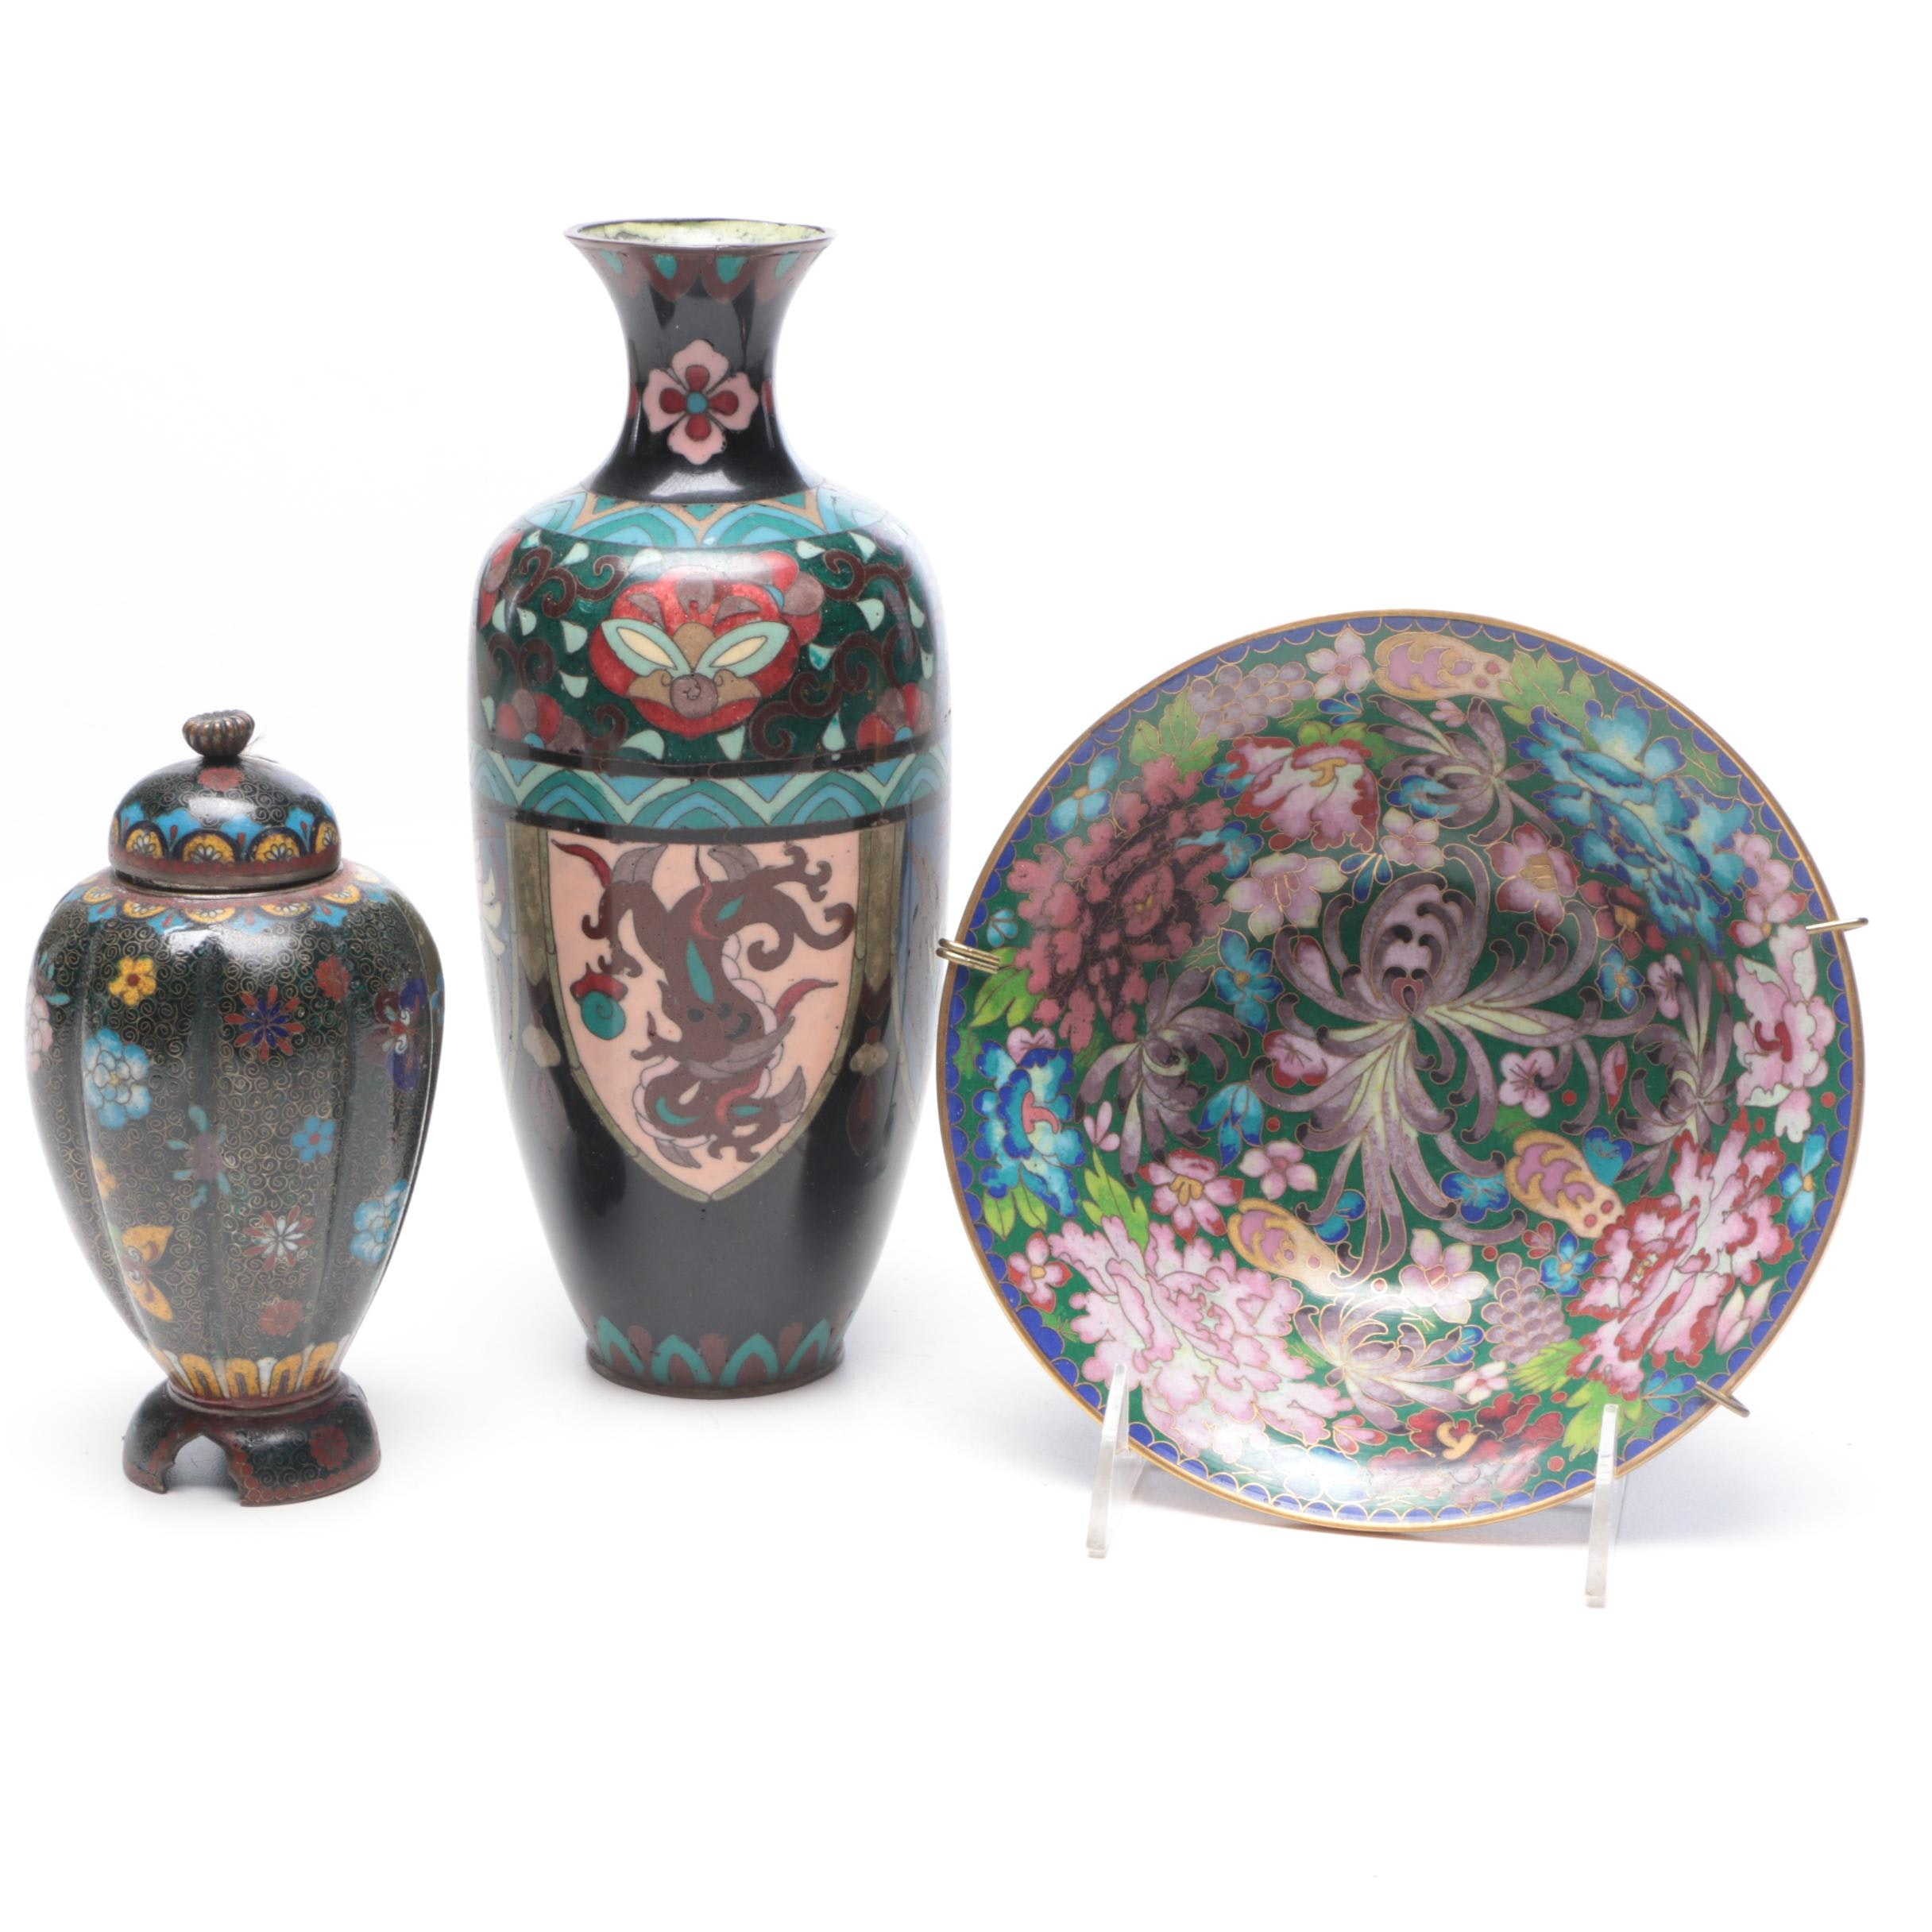 Japanese Cloisonné Vase and Lidded Jar with Chinese Cloisonné Bowl